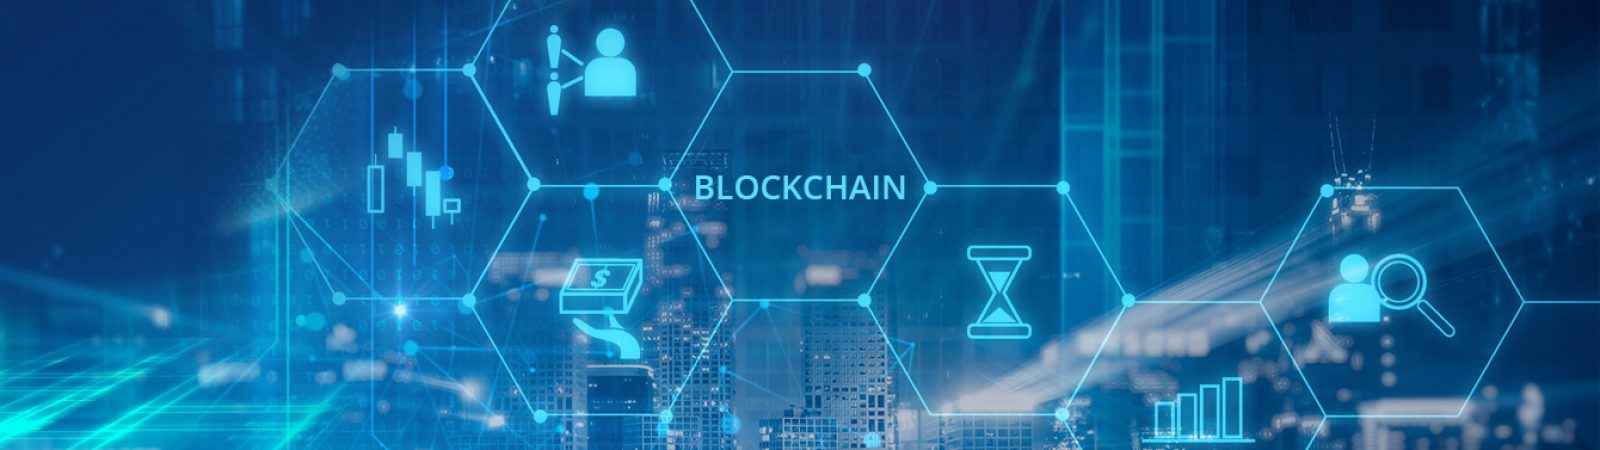 Web-banner-Blockchain-The-buzzword-everybody-is-talking-about-3-1